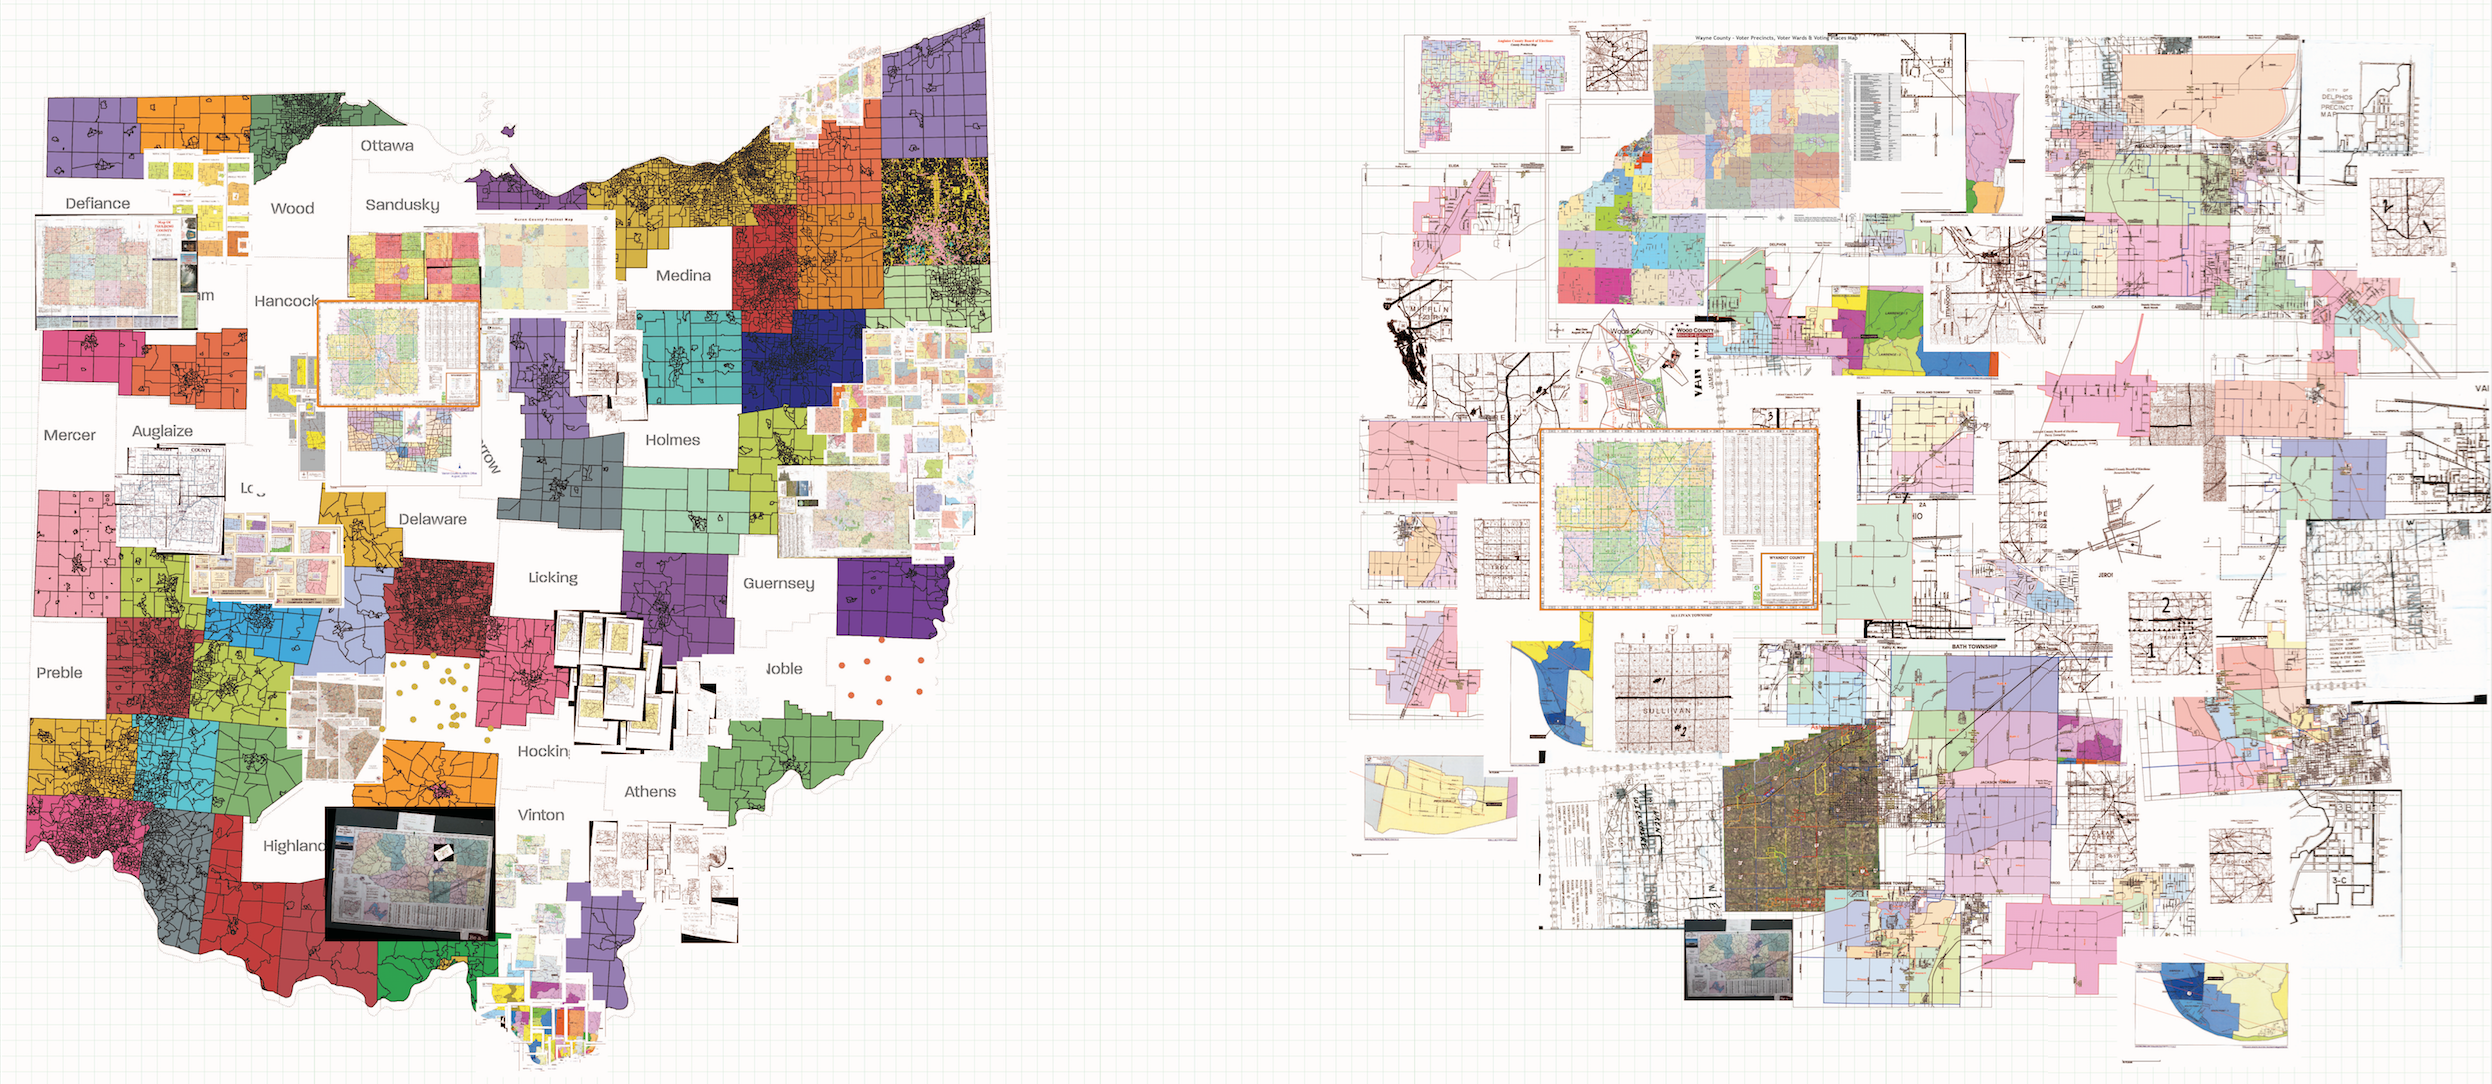 Image of the shapefiles and PDF maps we received